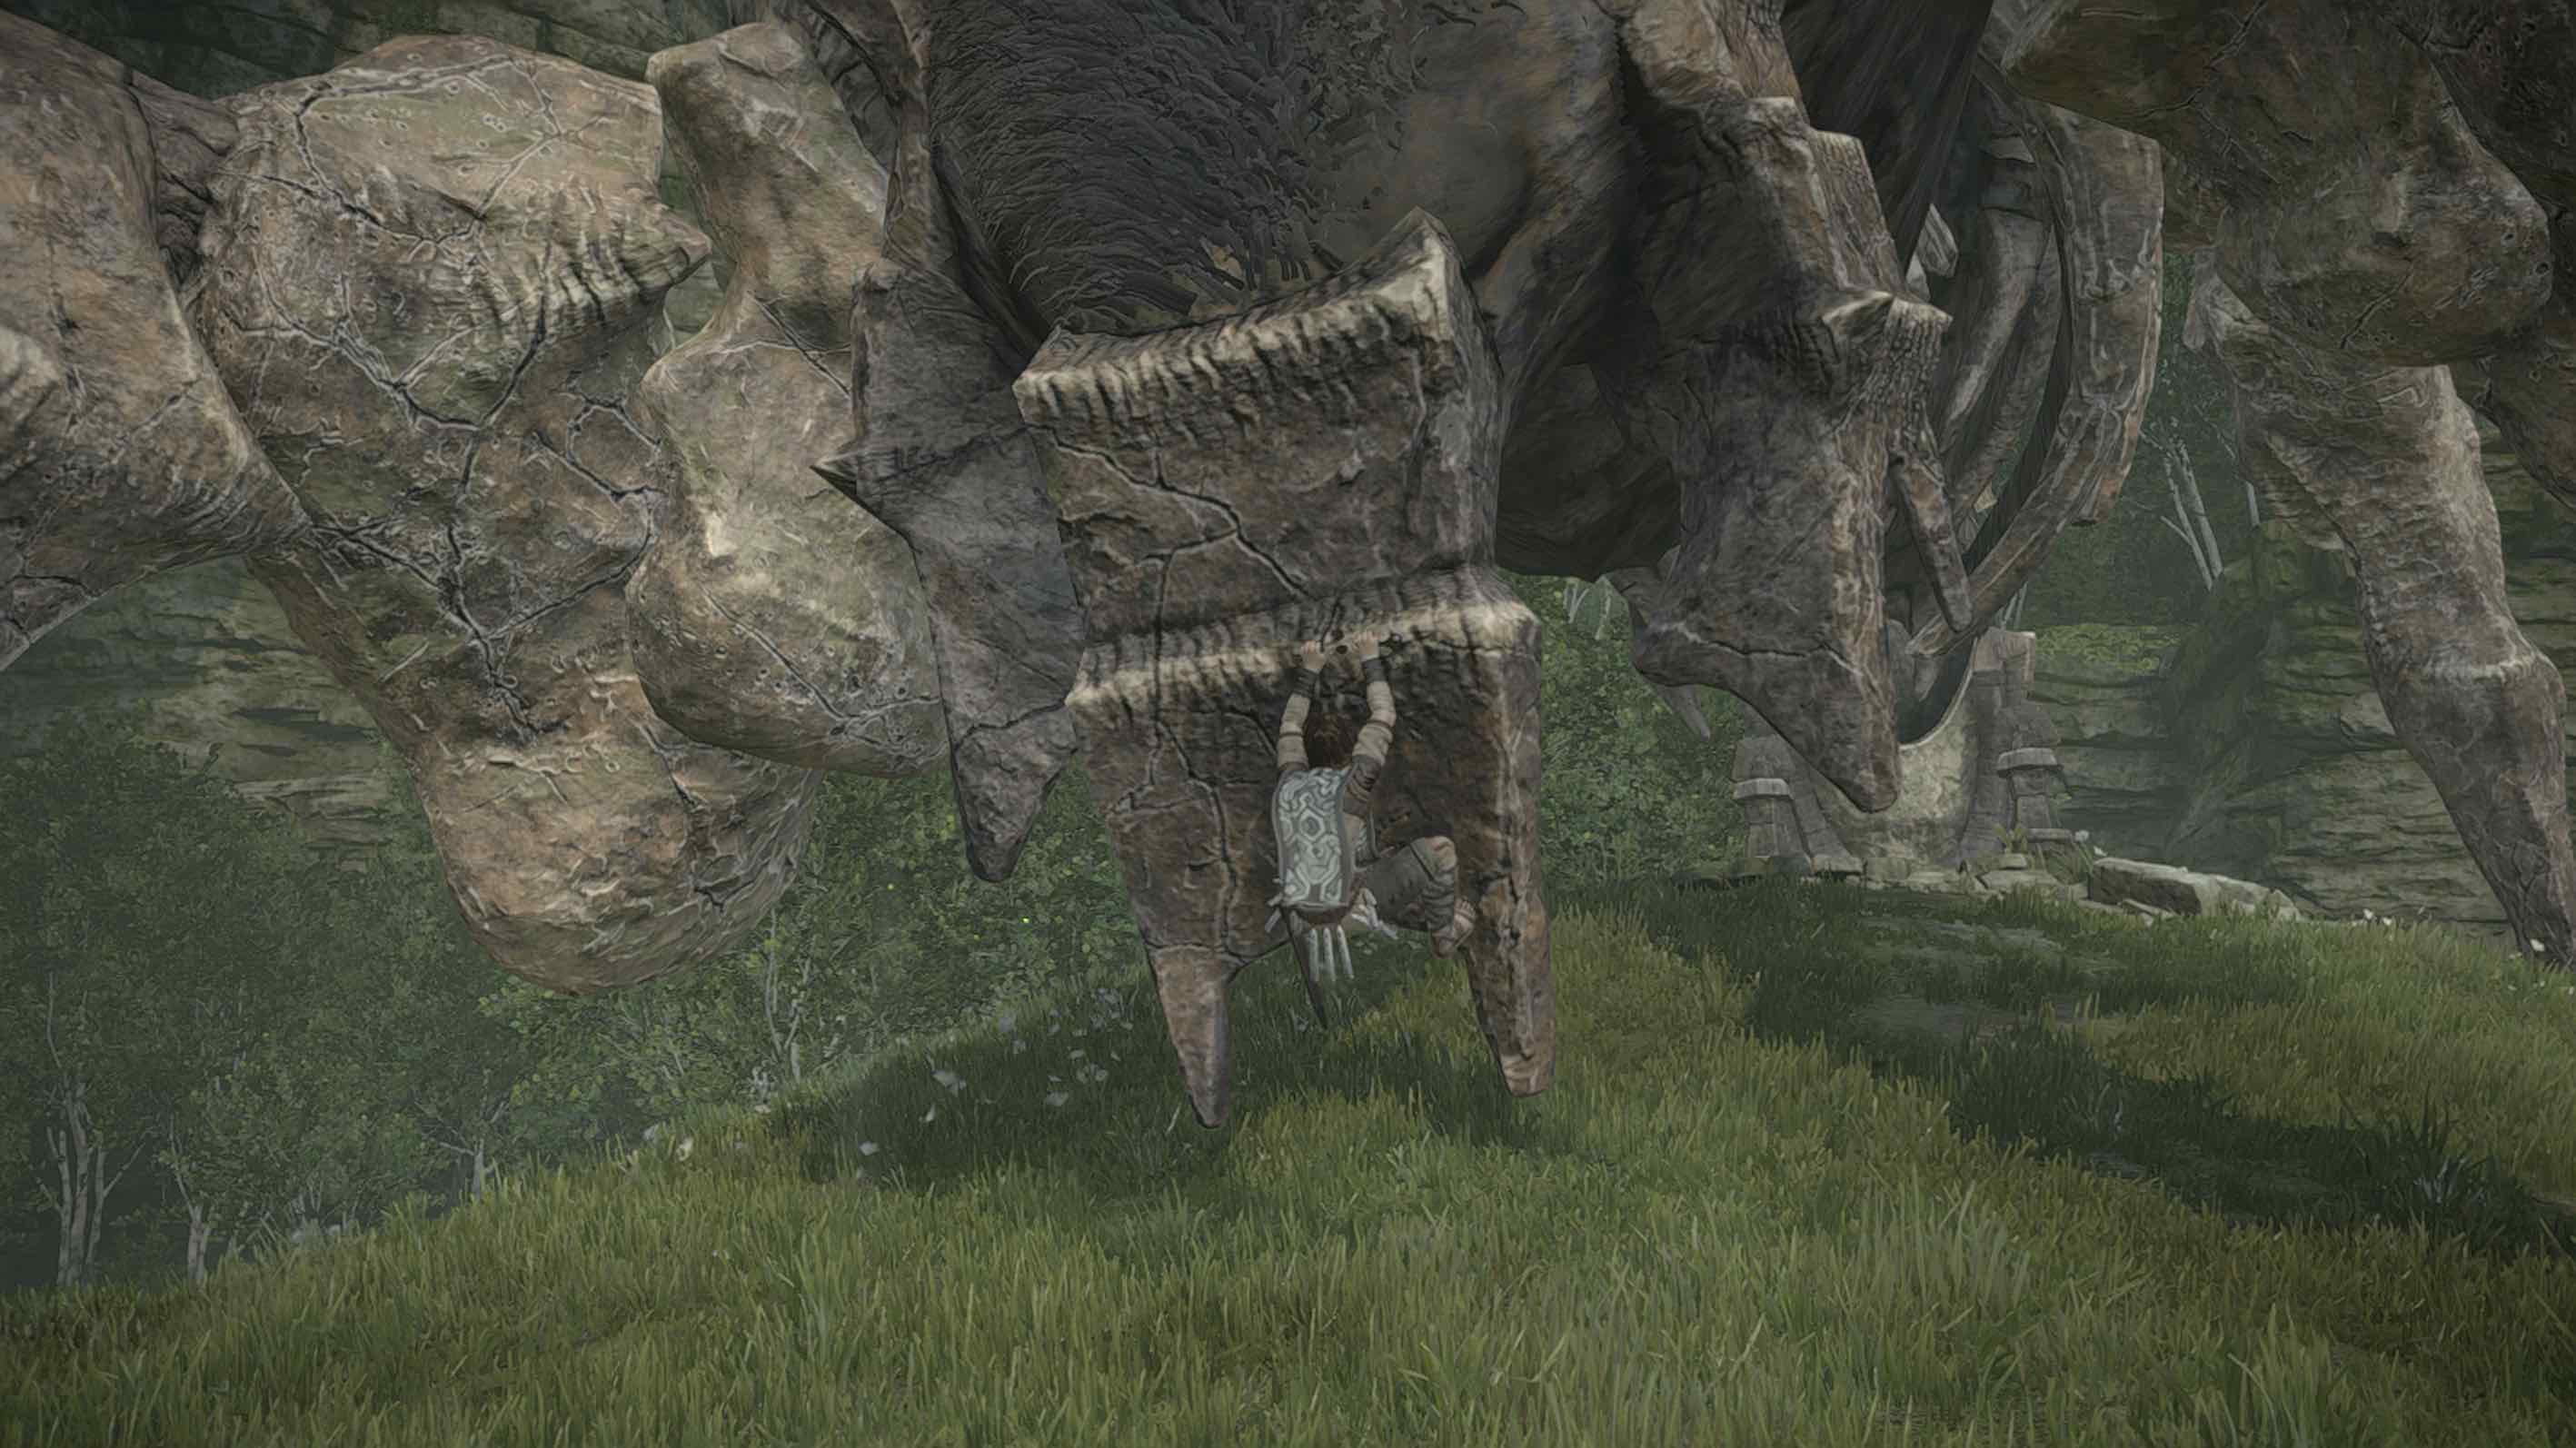 Shadow_of_the_Colossus_Coloso_4_3